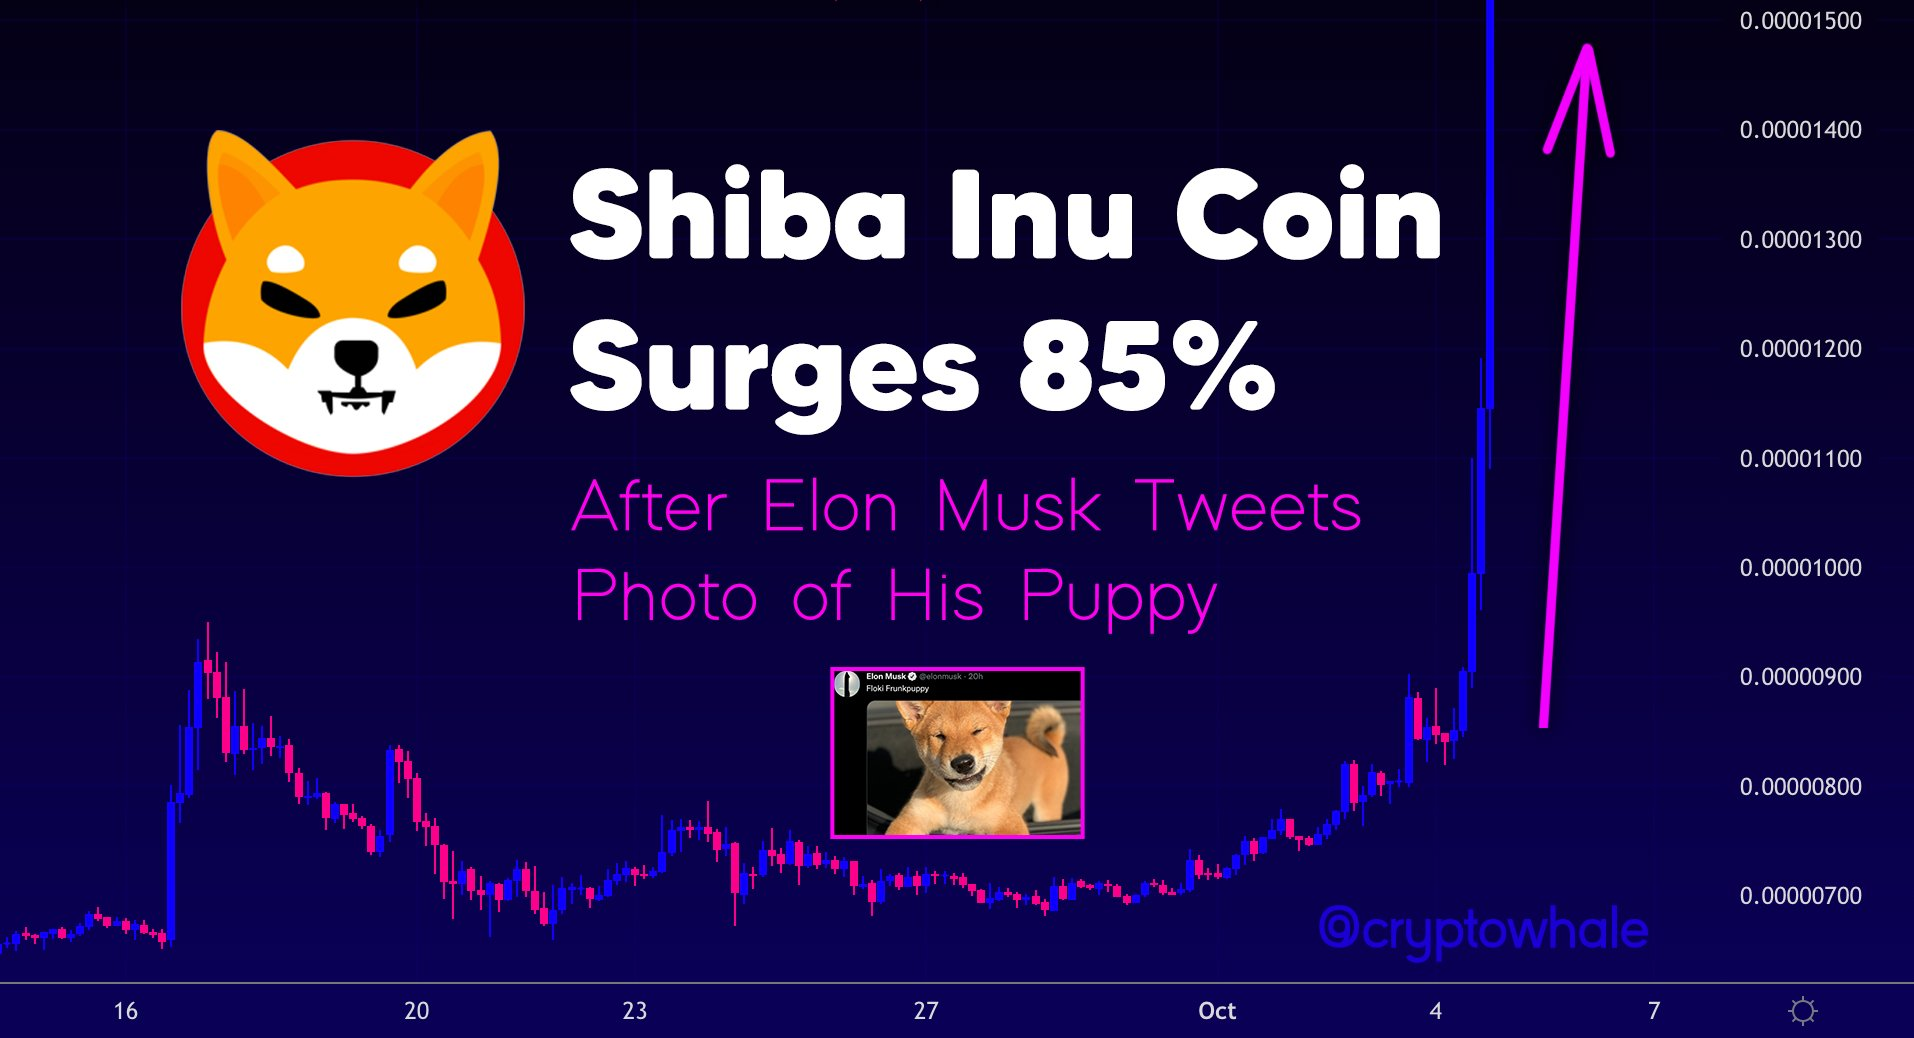 Elon Musk posted a photo of a dog sitting on Tesla, Shiba Inu (SHIB) increased by 85% - What secret does Musk have?